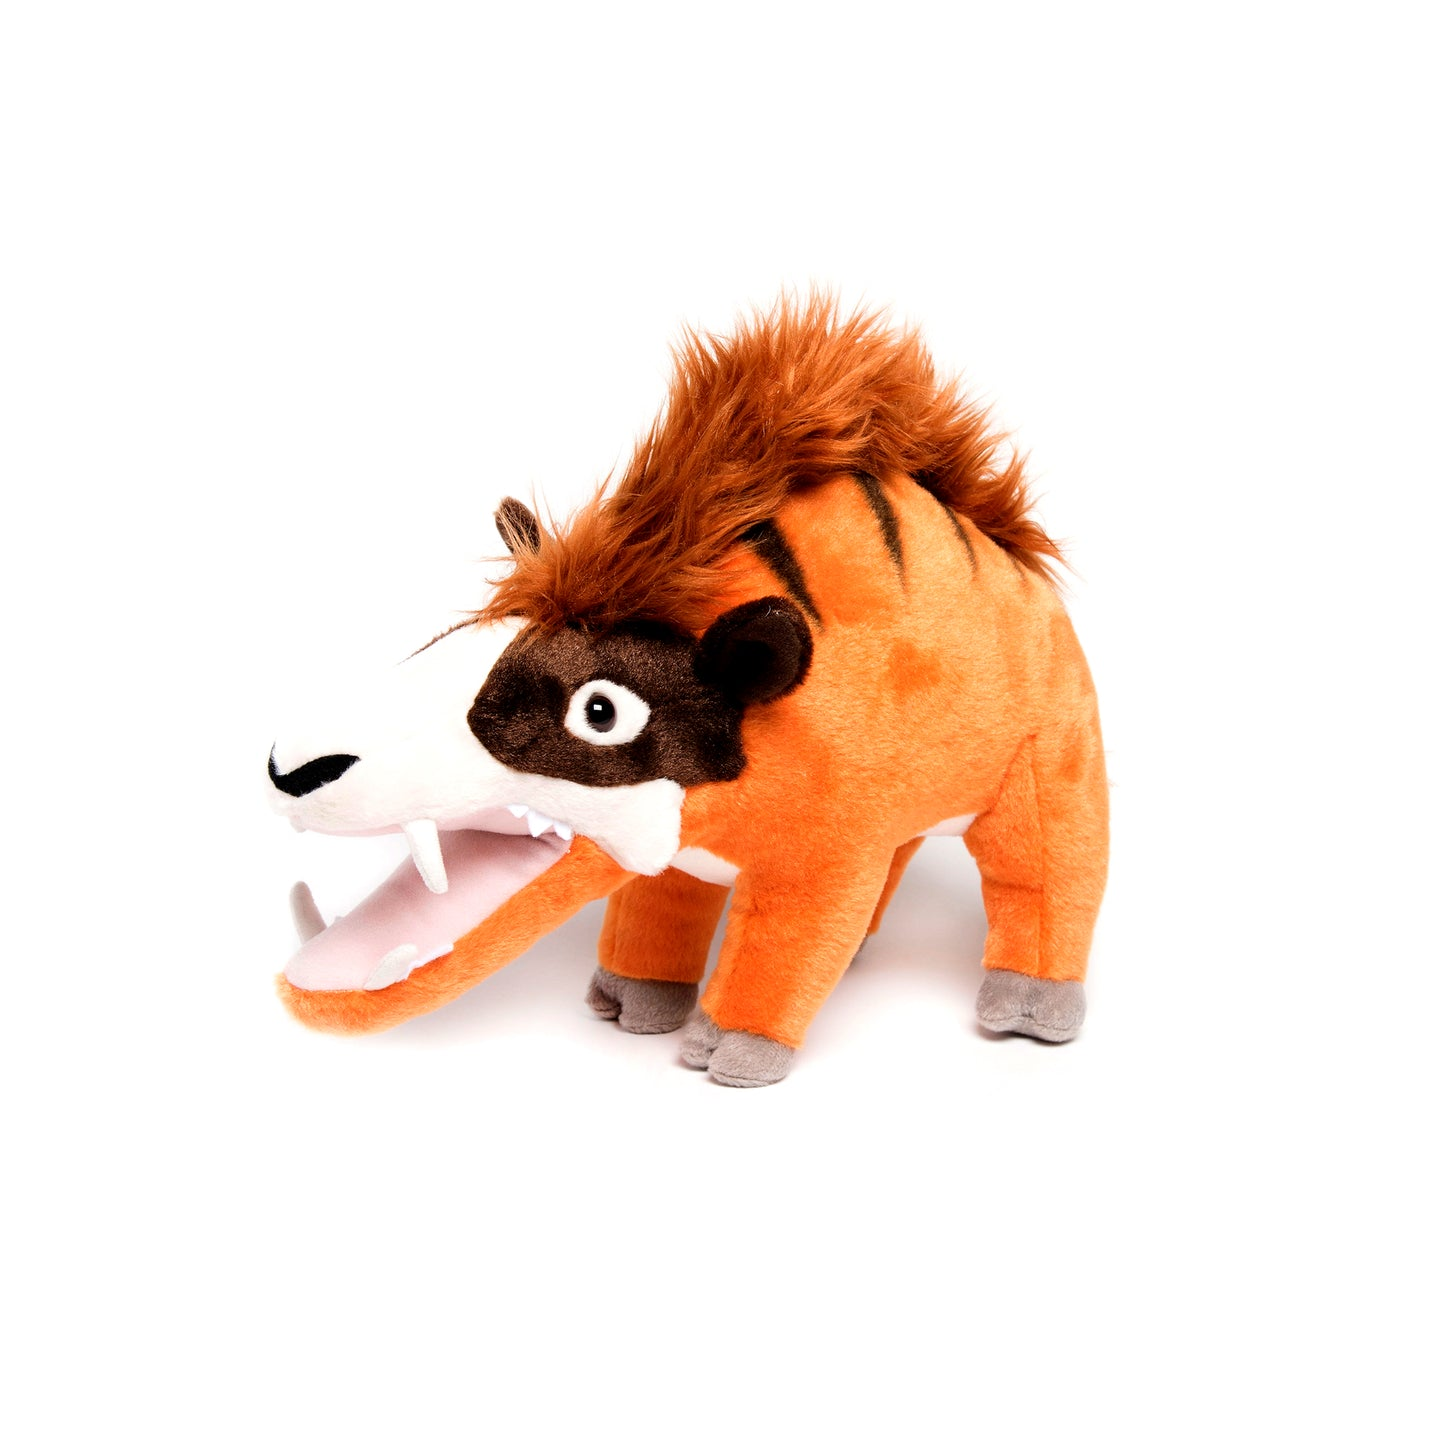 Archaeotherium Stuffed Animal